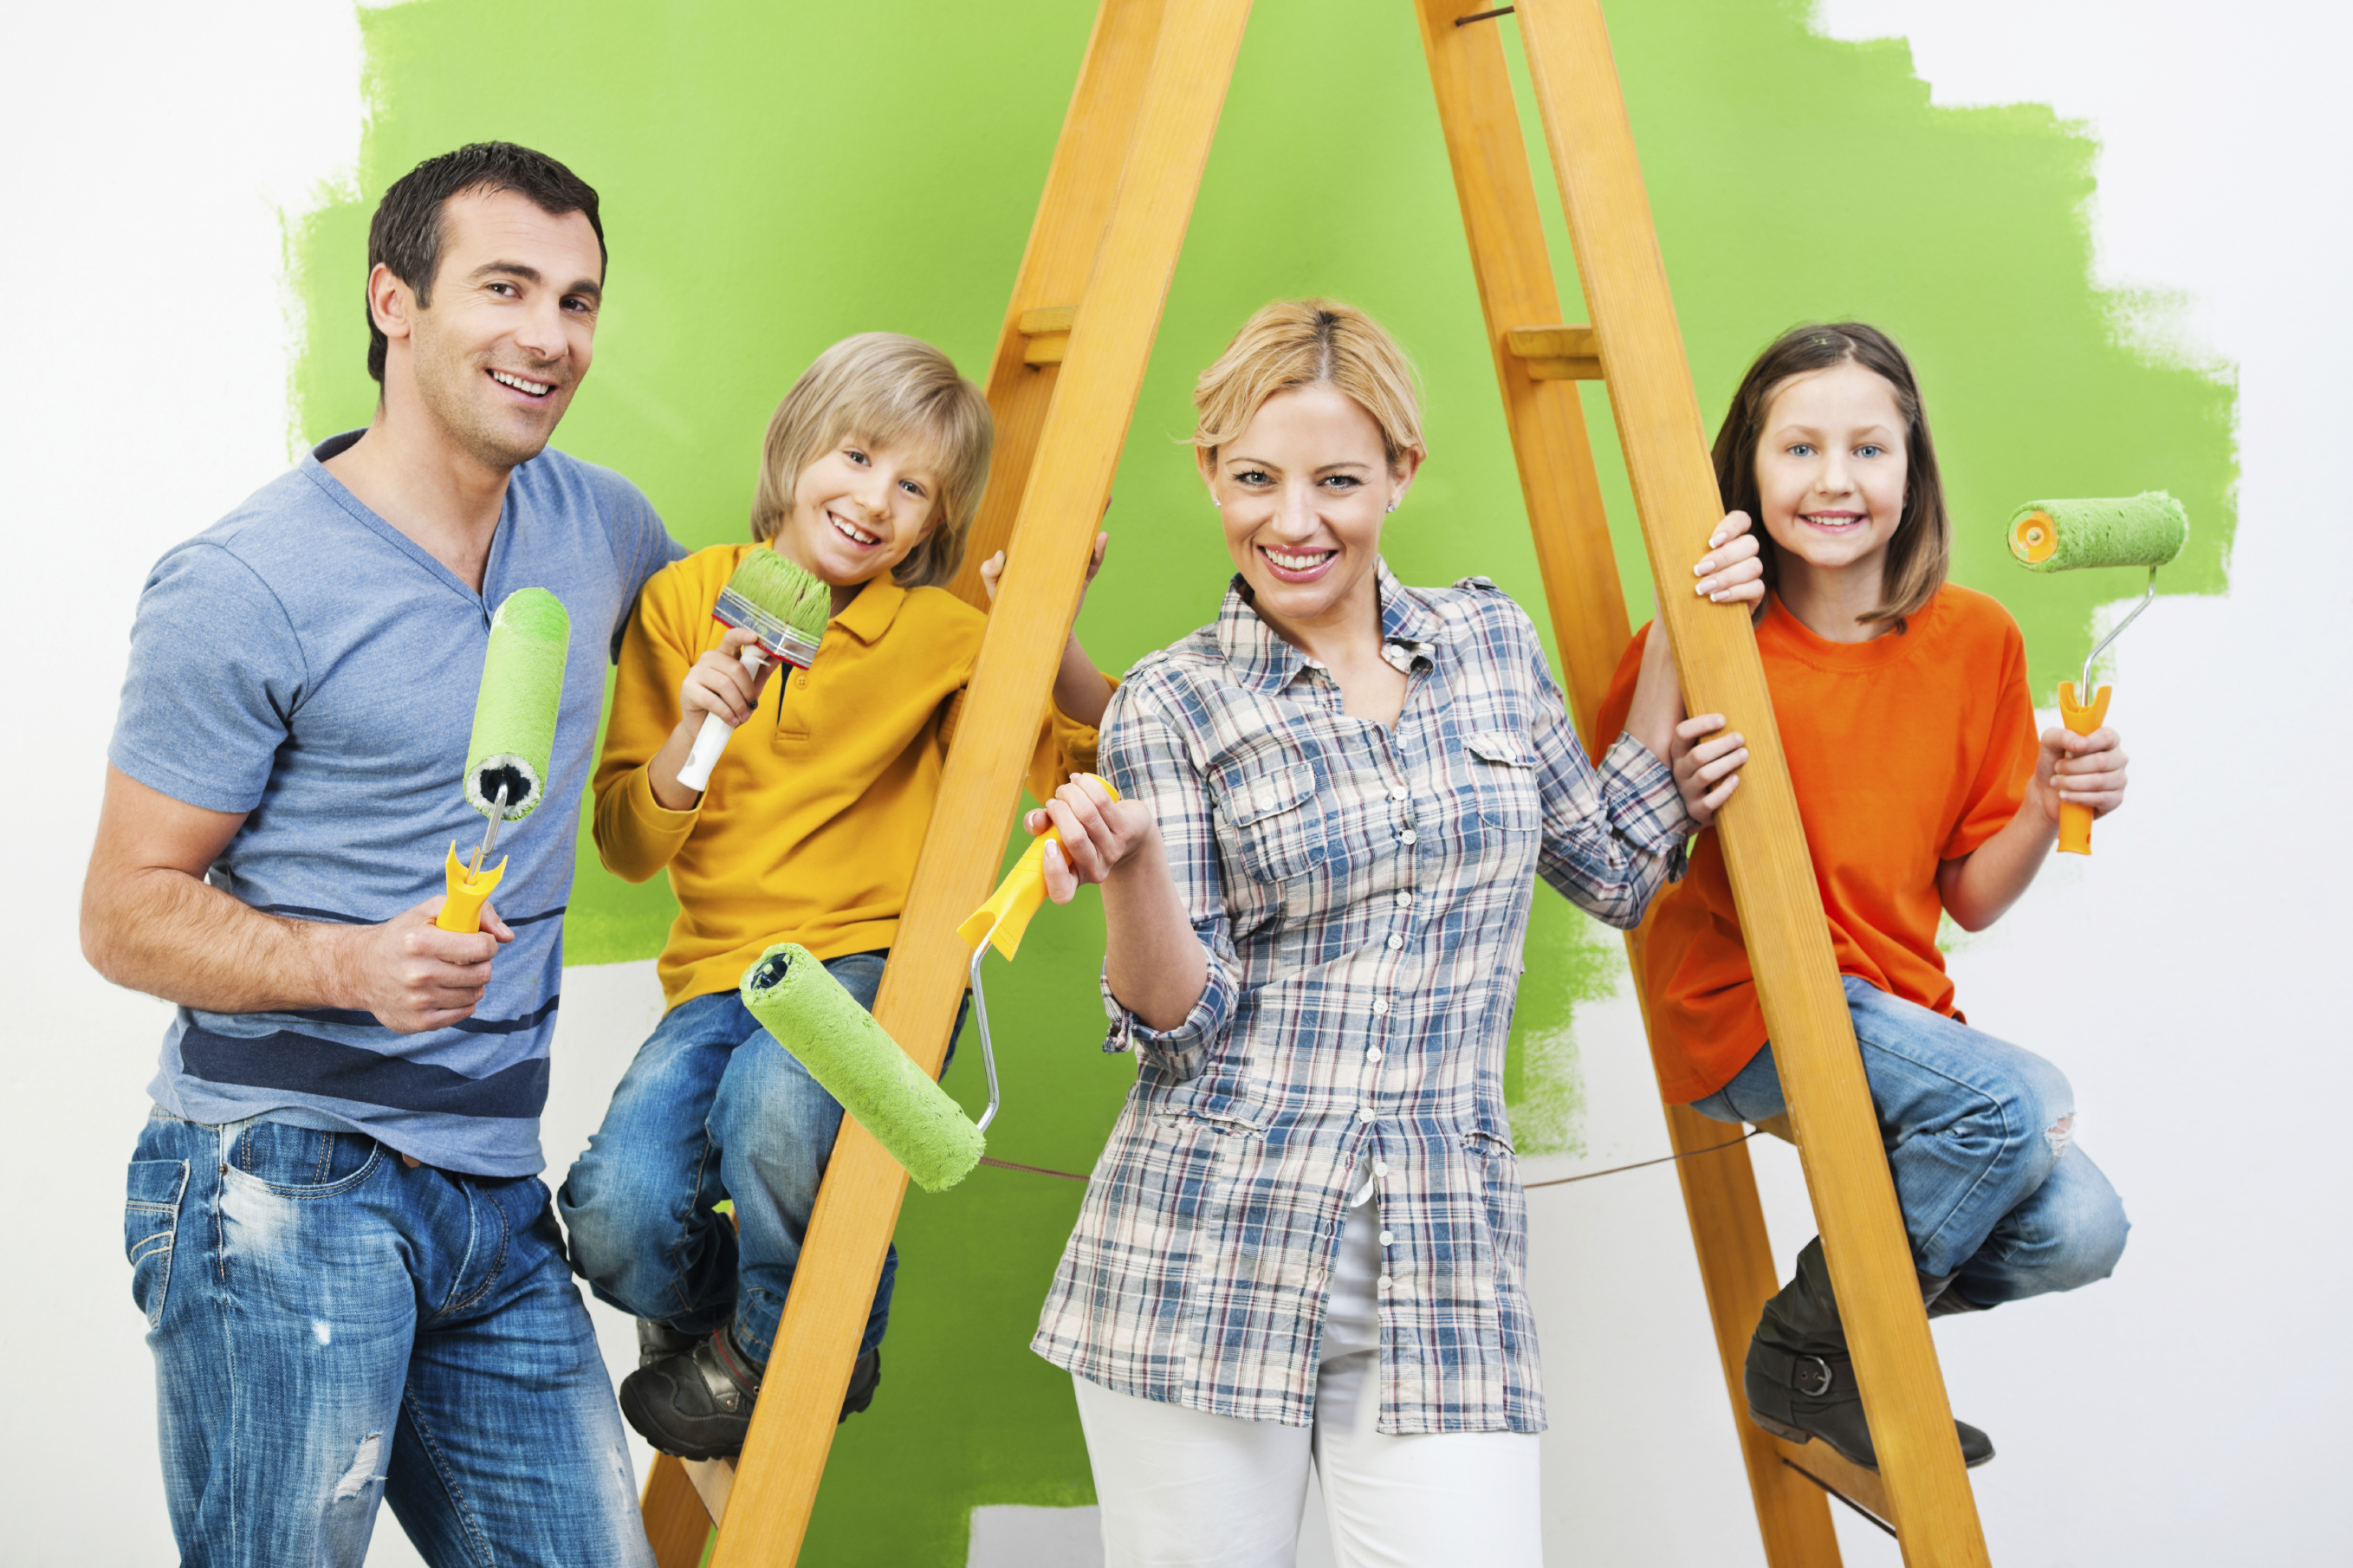 Painting Family Preparing A Home For The Market Can Seem Like Full Time Job Without Paycheck While Upgrades Increase Your Homes Value And